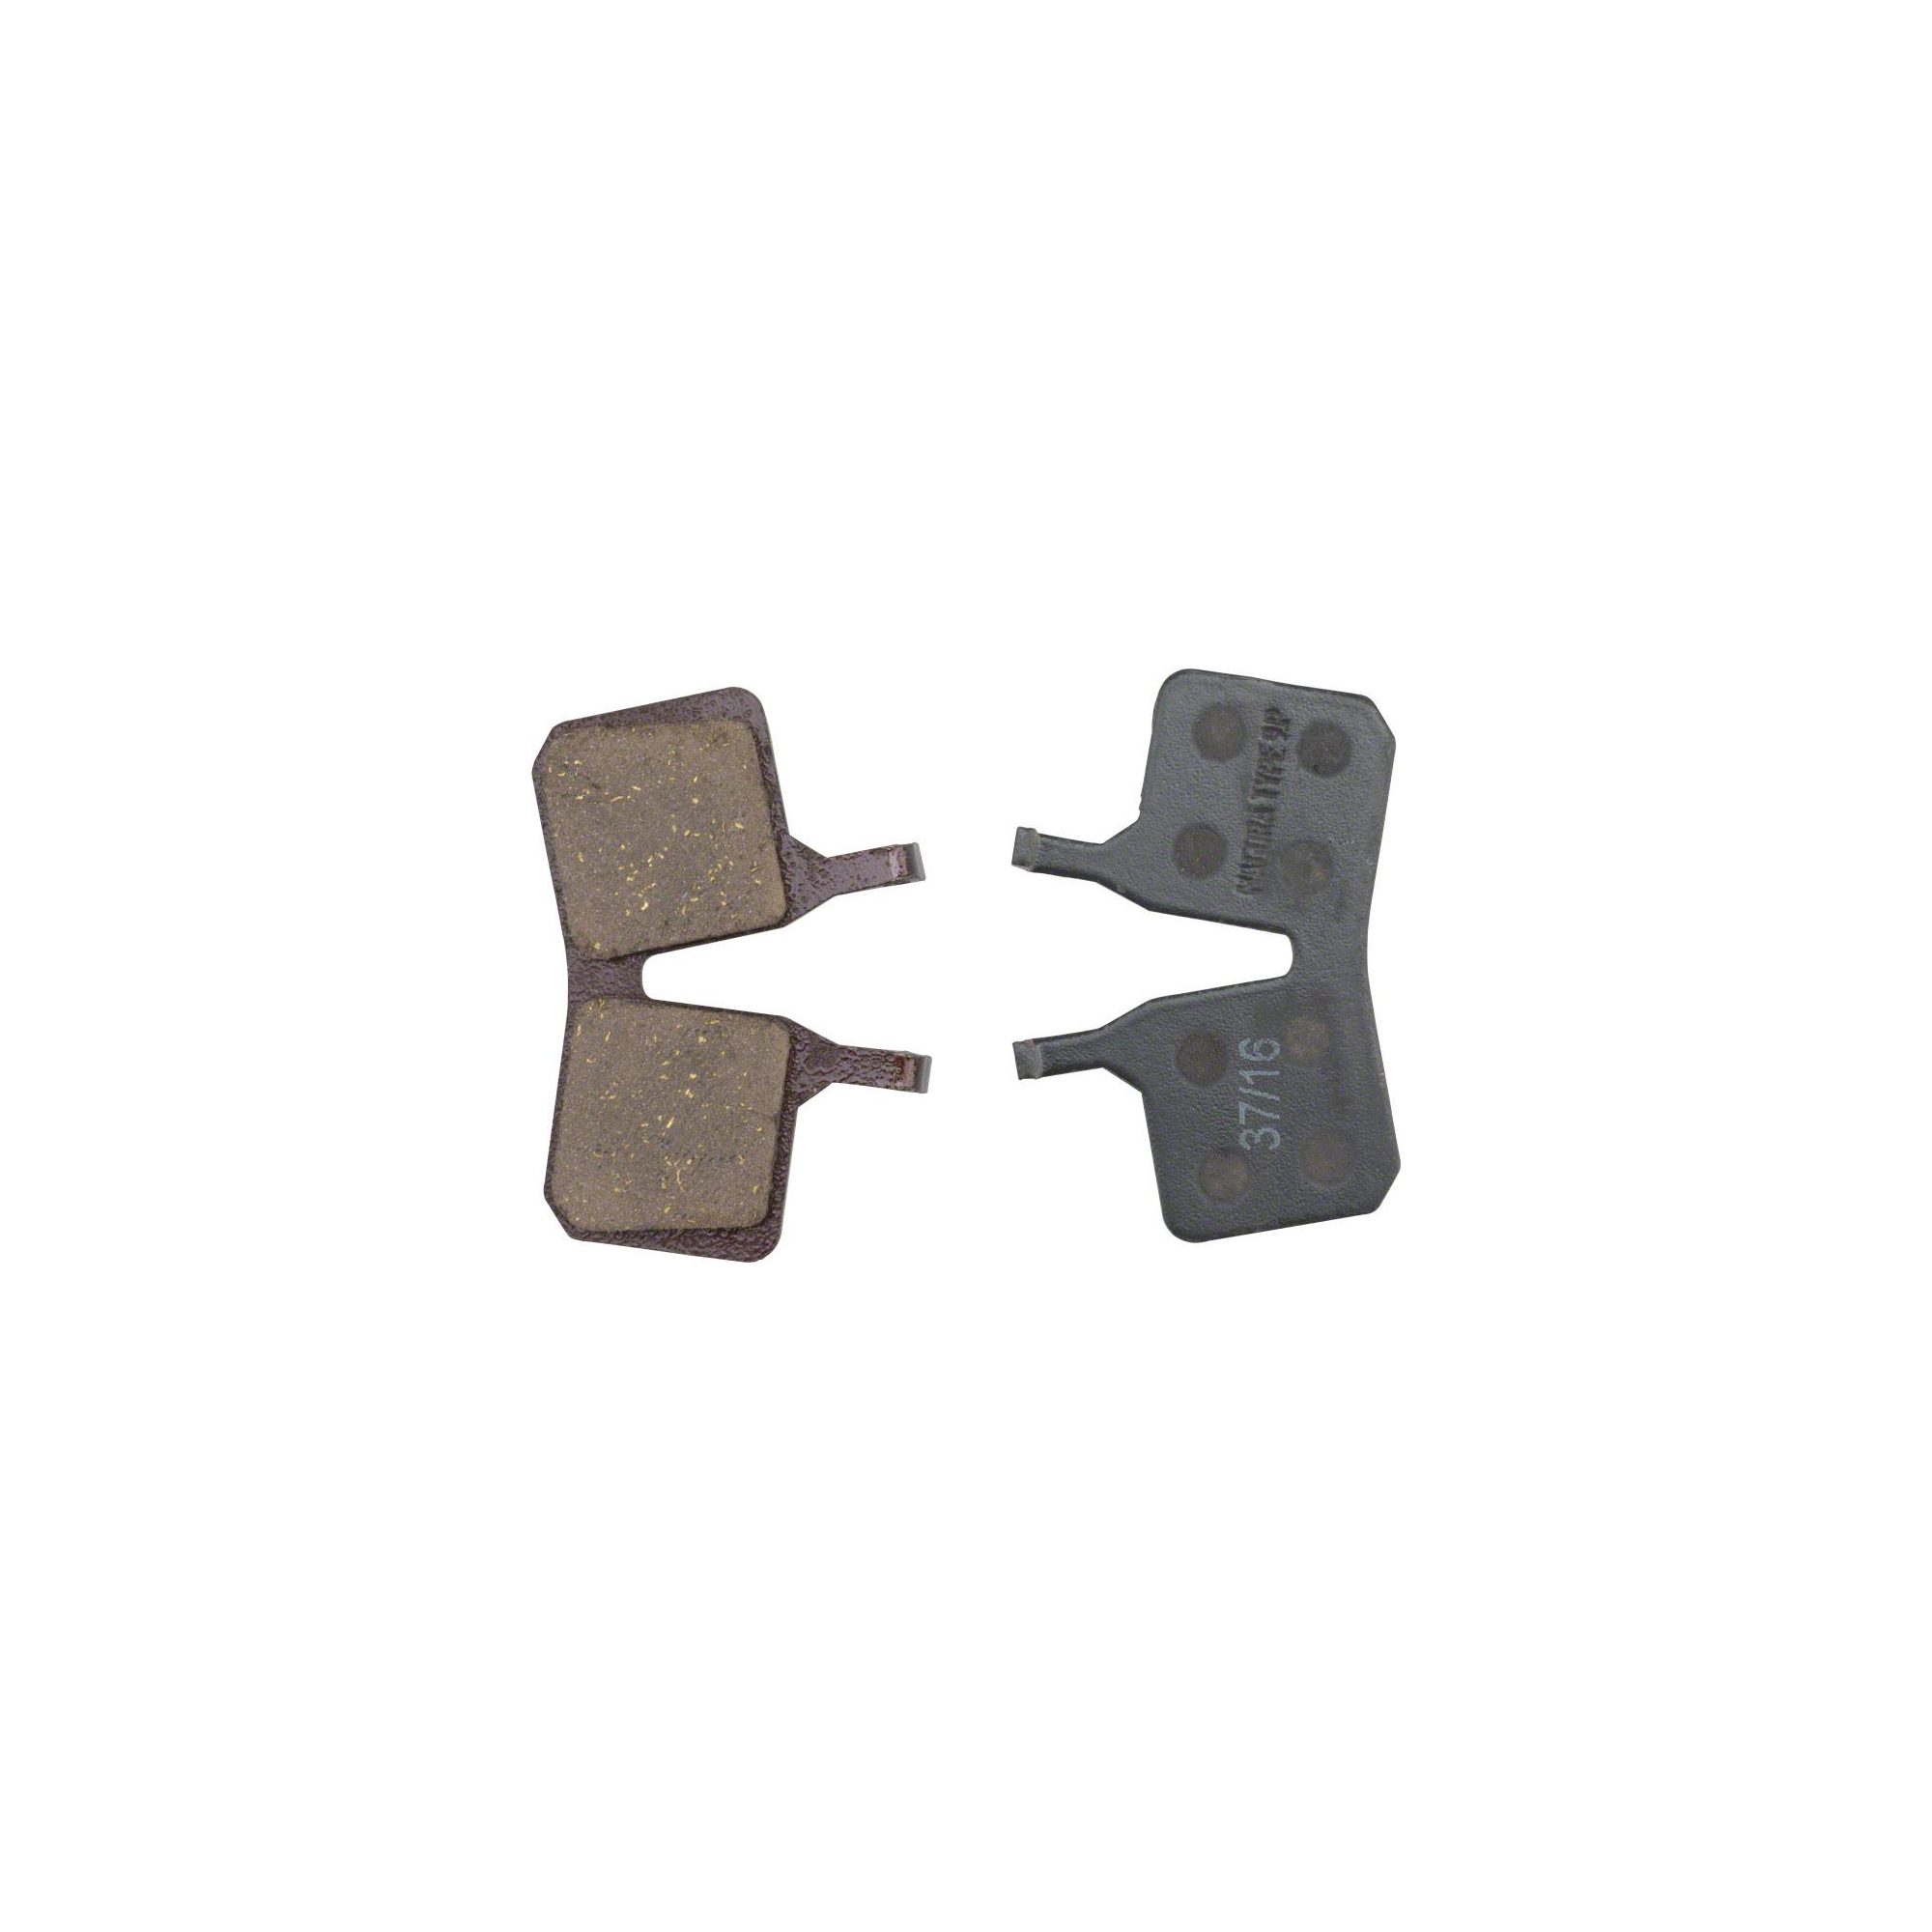 Magura 8.P Disc Brake Pads Performance Compound